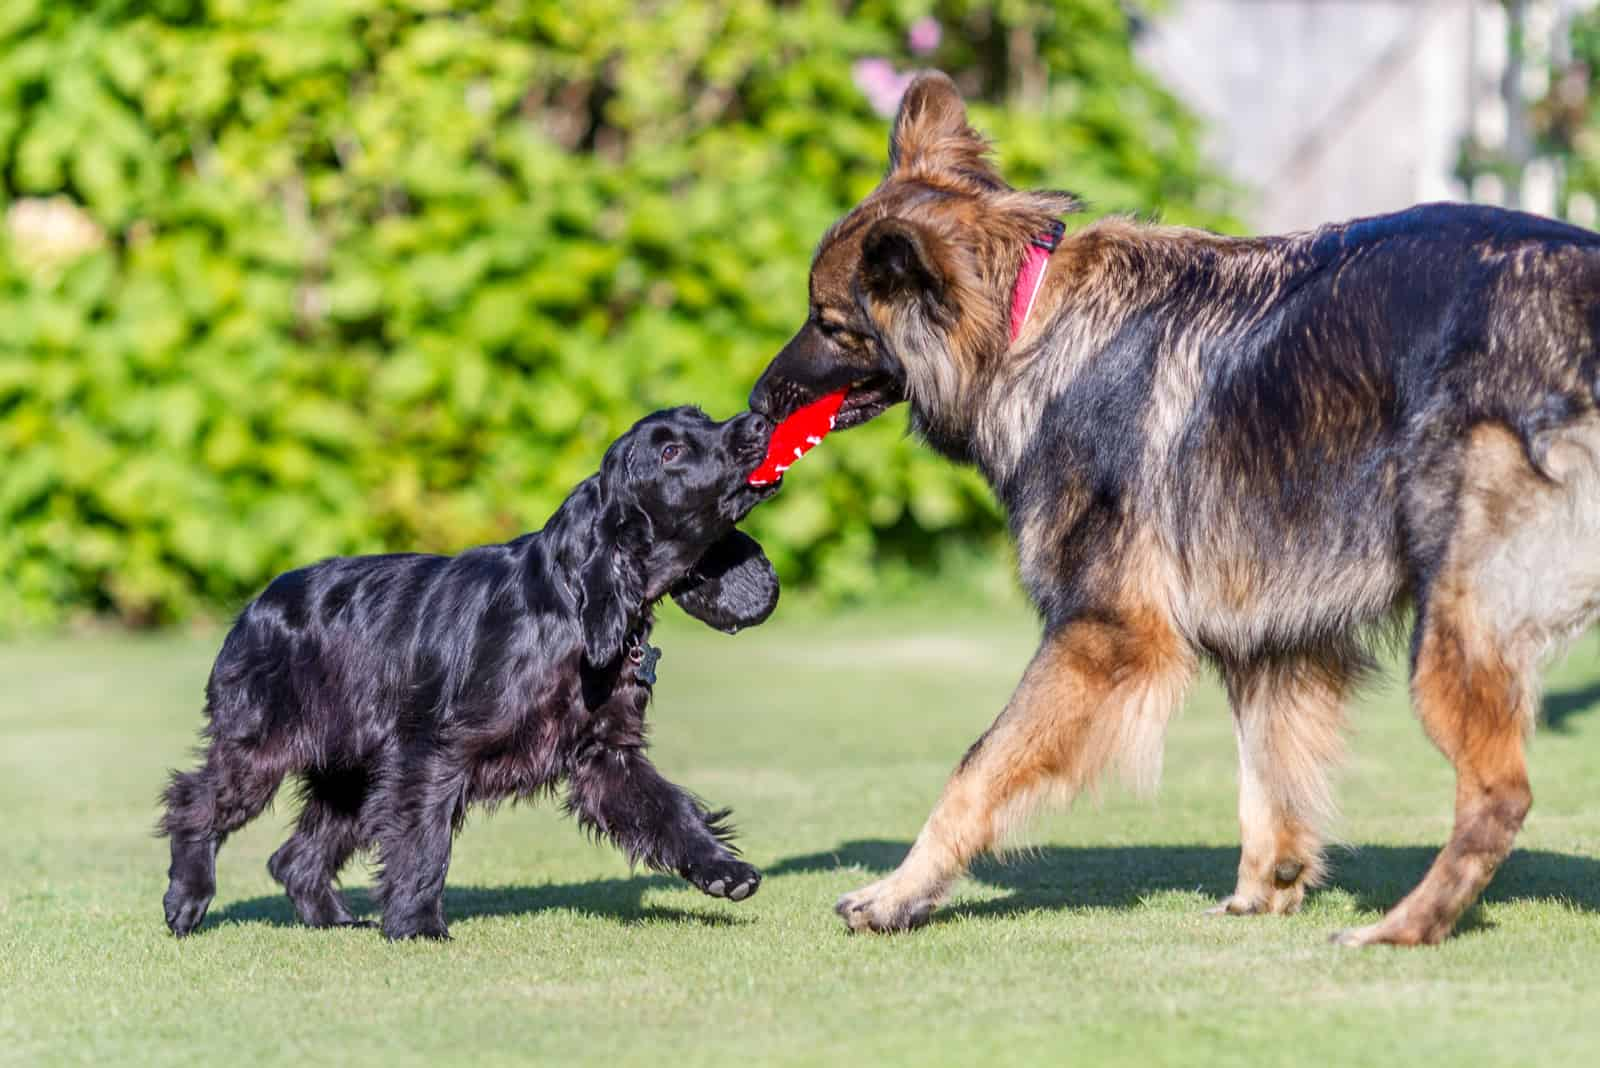 a German Shepherd plays with a poodle